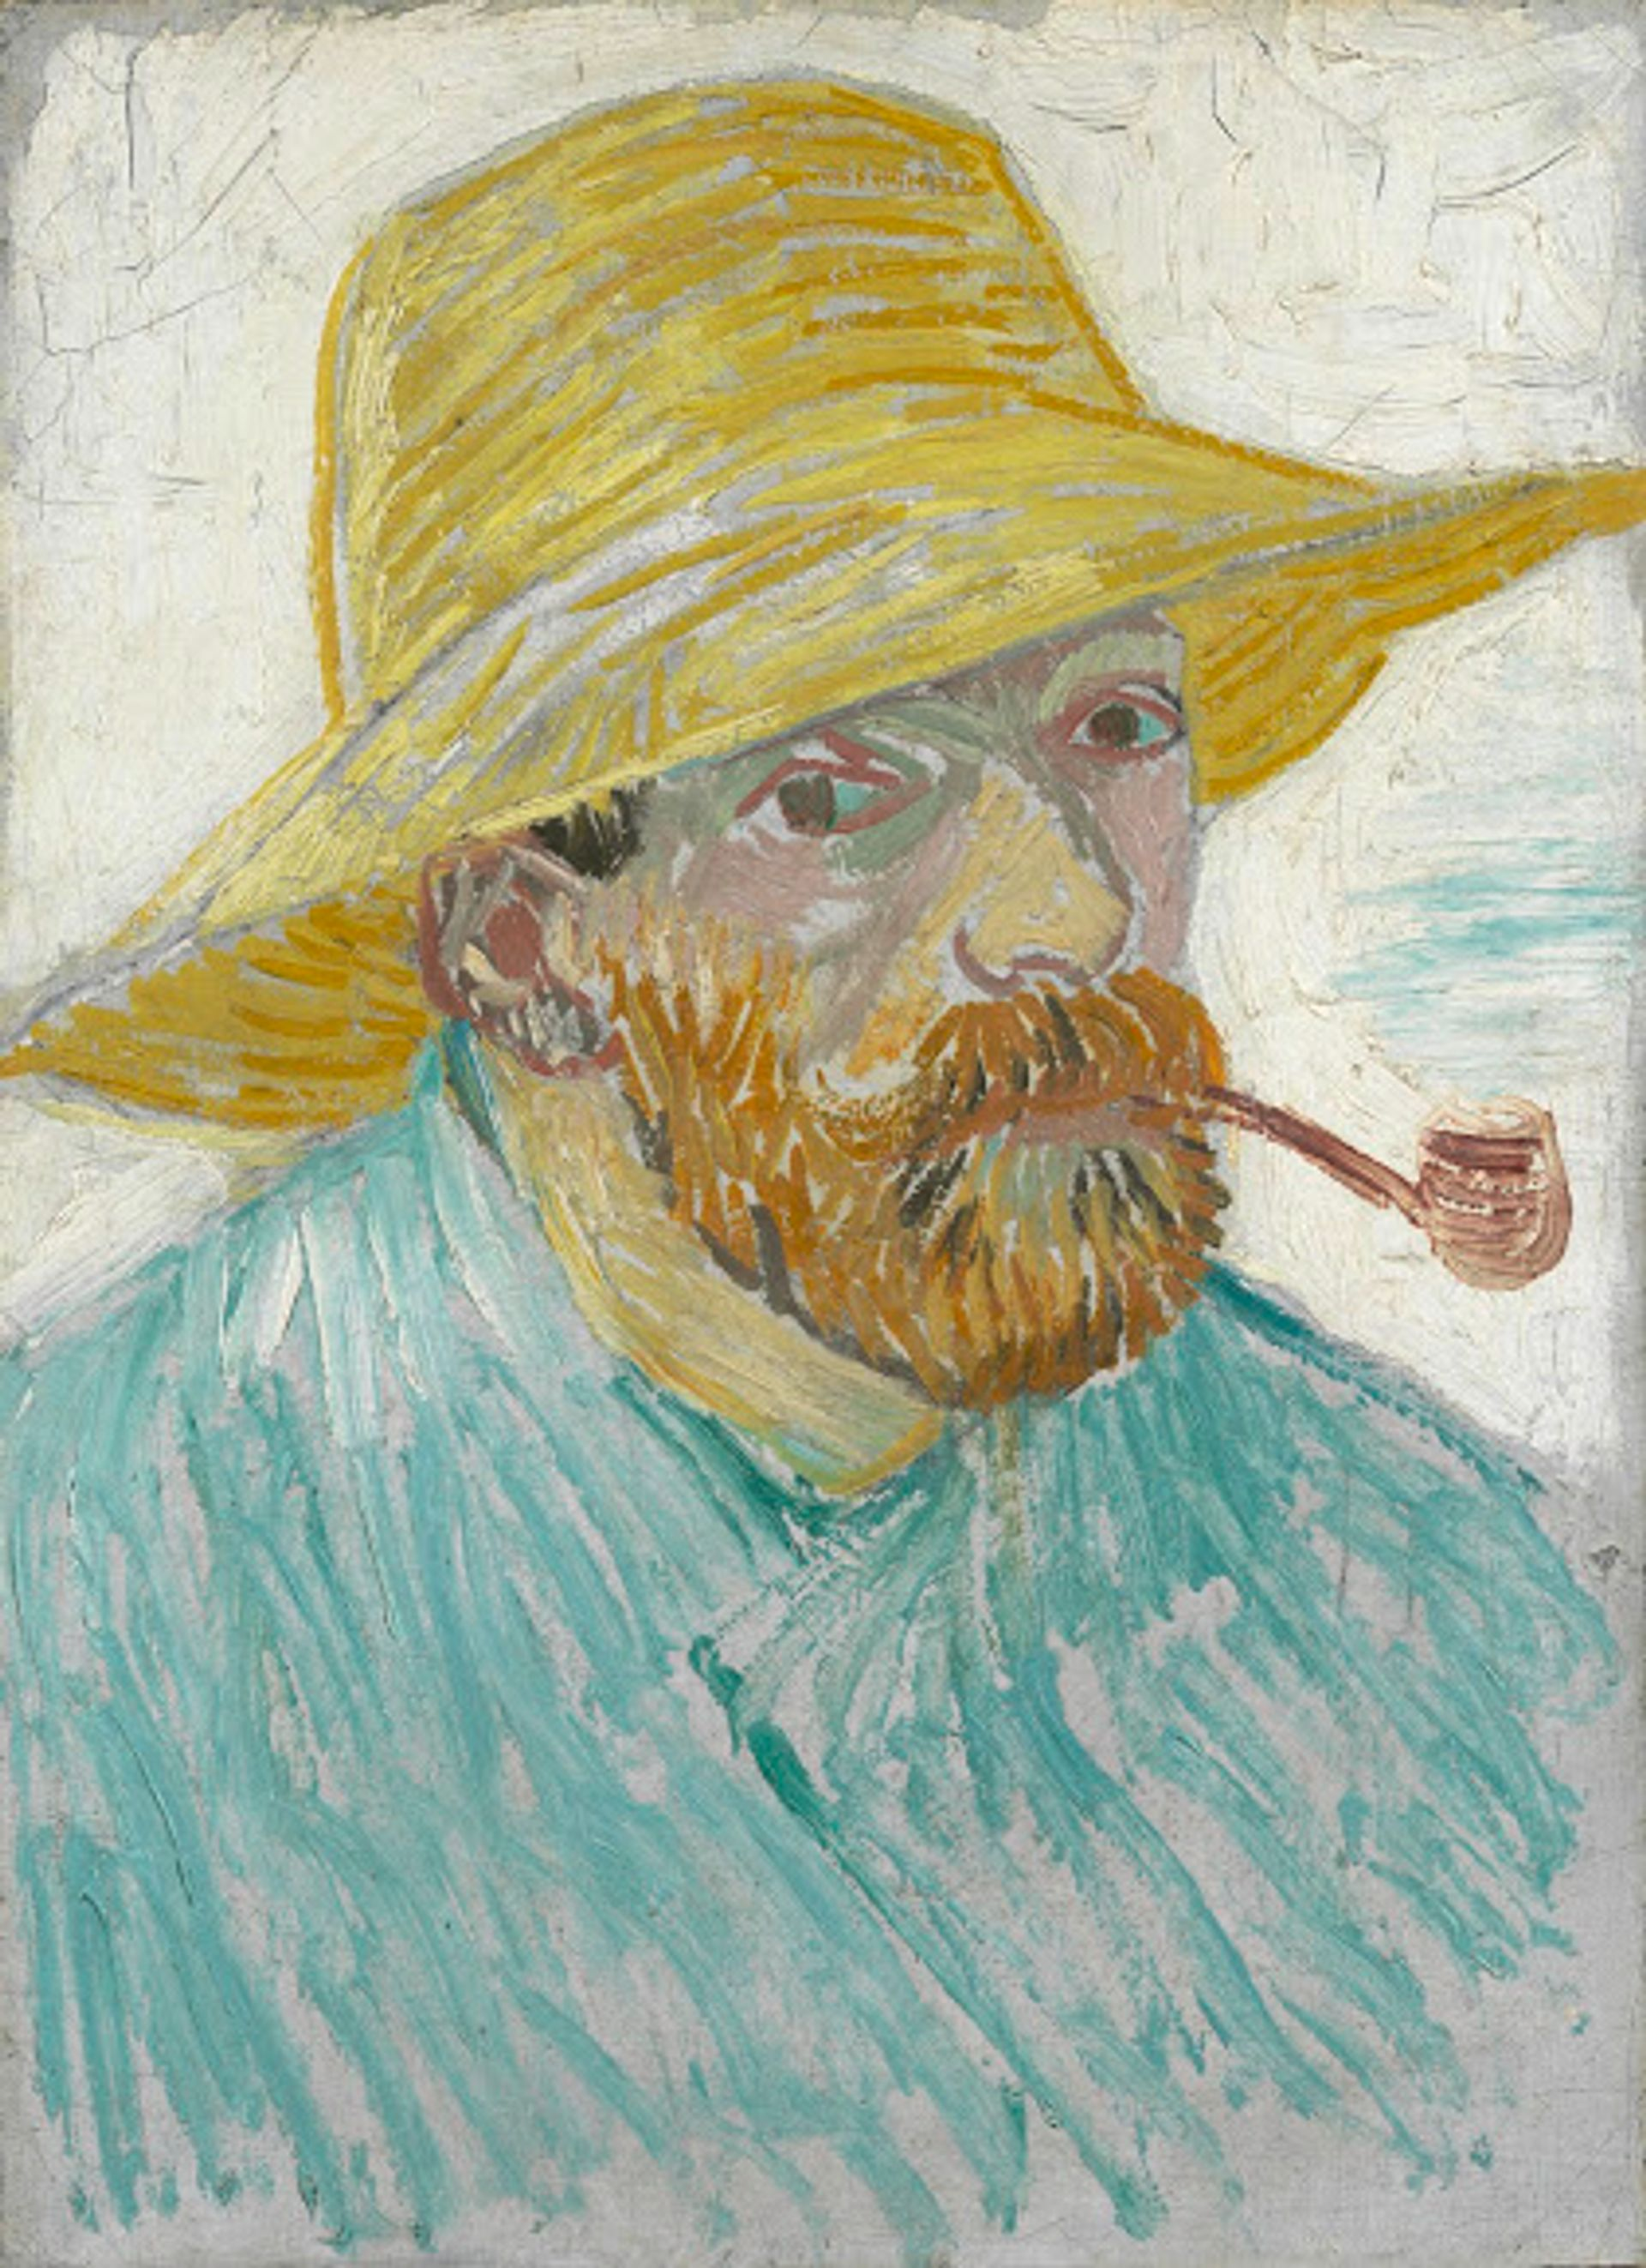 Vincent van Gogh's Self-portrait with Pipe and Straw Hat (1887) Courtesy of the Van Gogh Museum, Amsterdam (Vincent van Gogh Foundation)